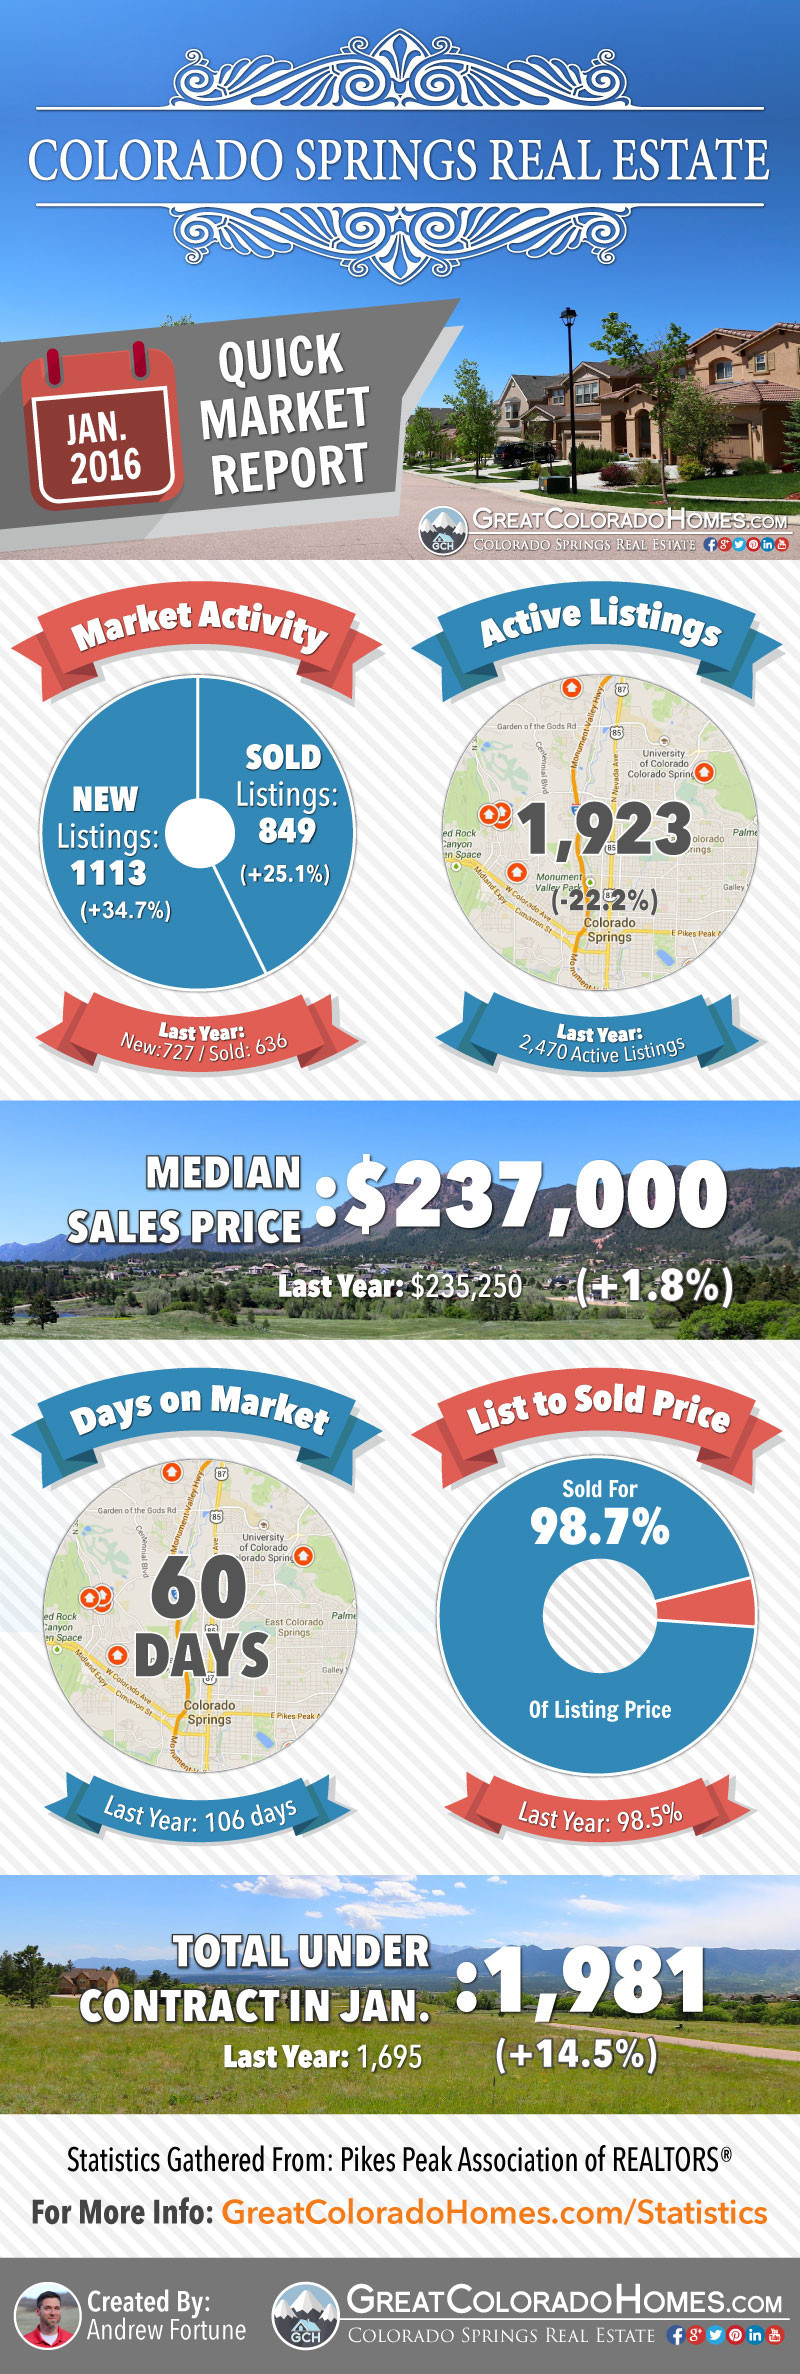 January 2016 Colorado Springs Real Estate Market Report